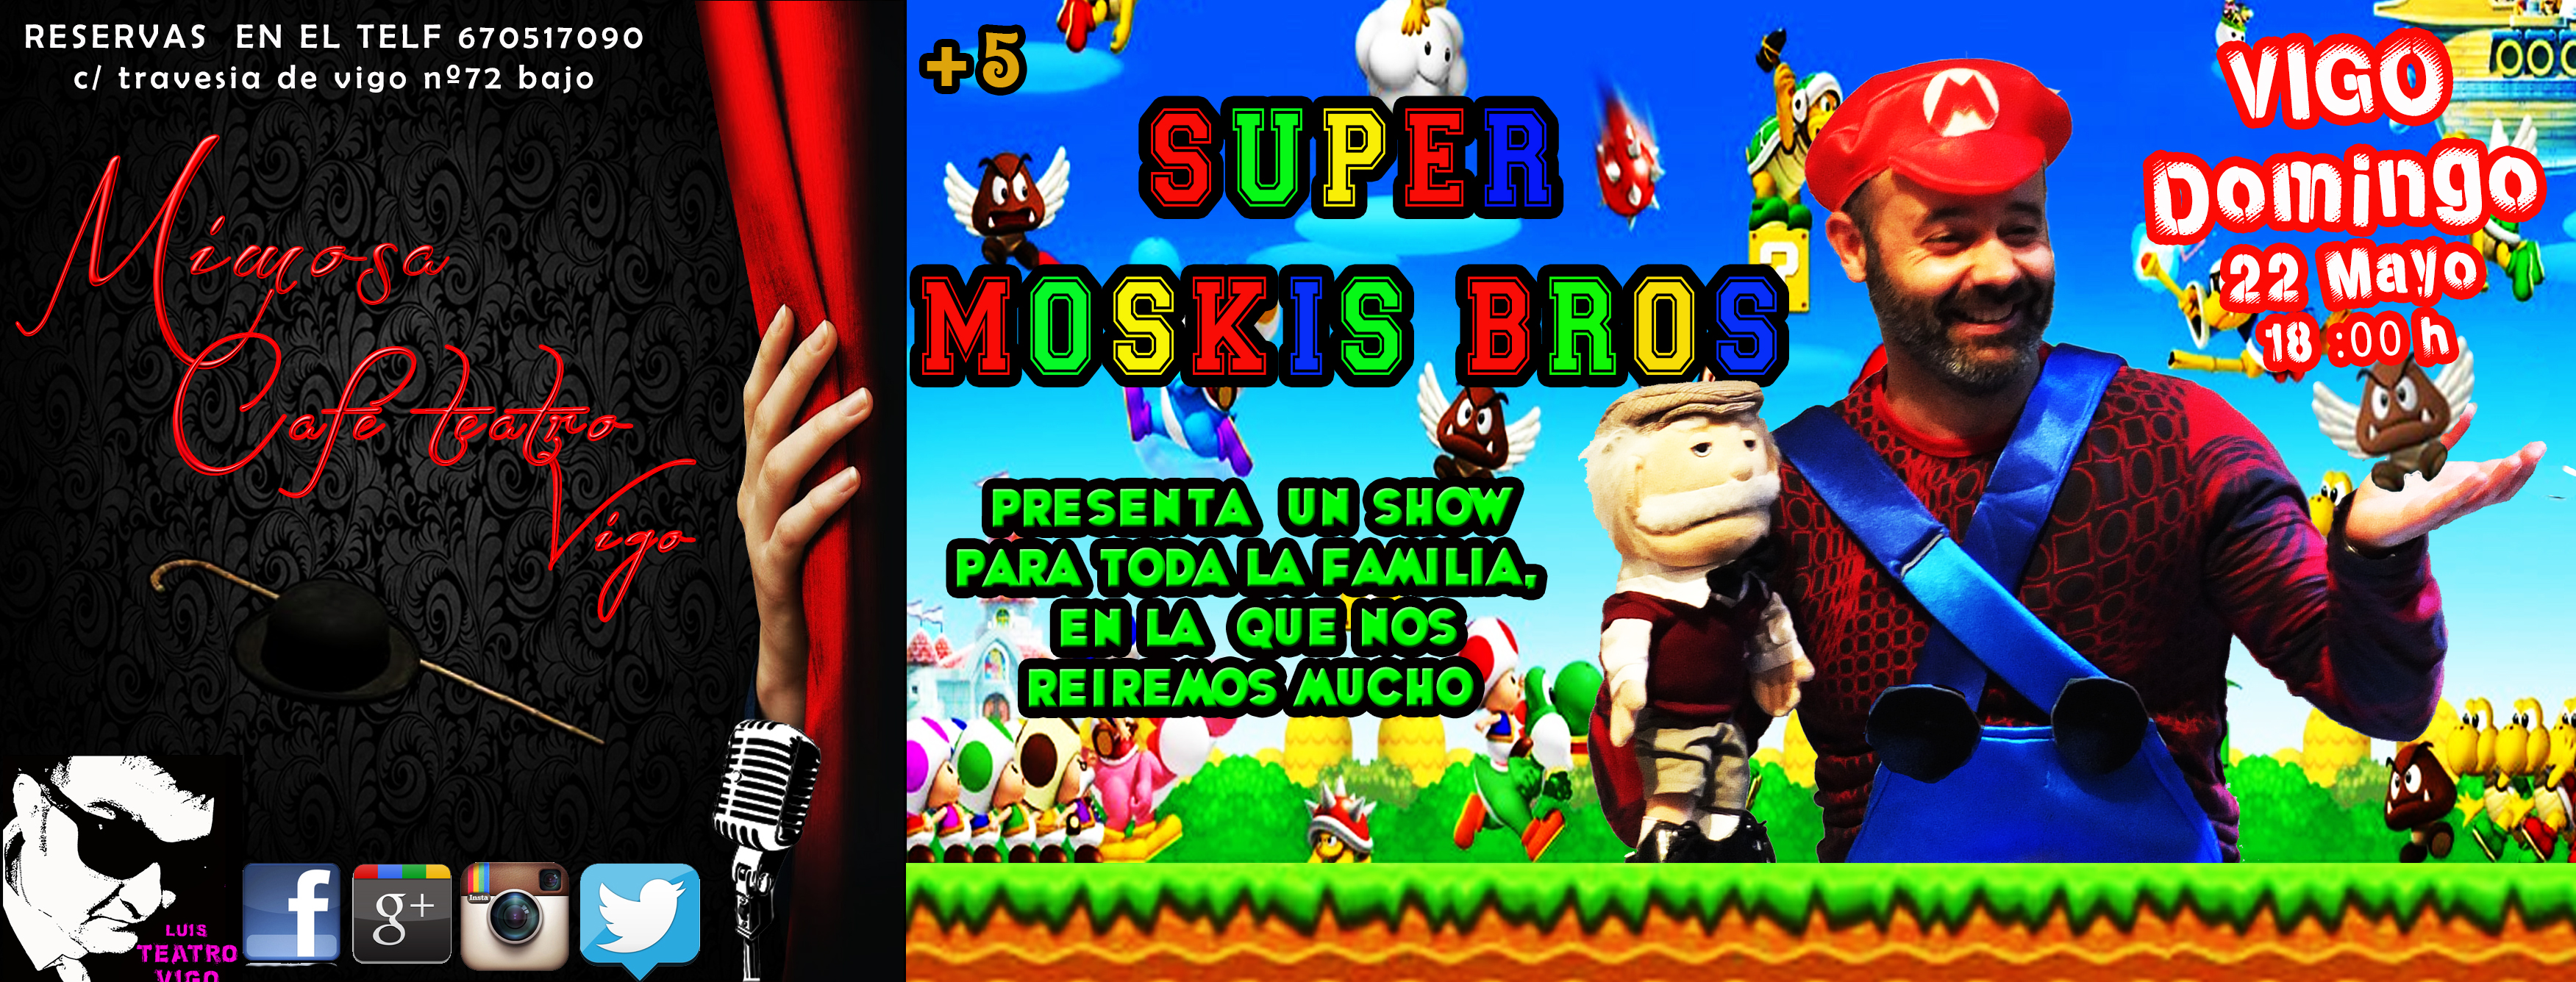 super moskis bros